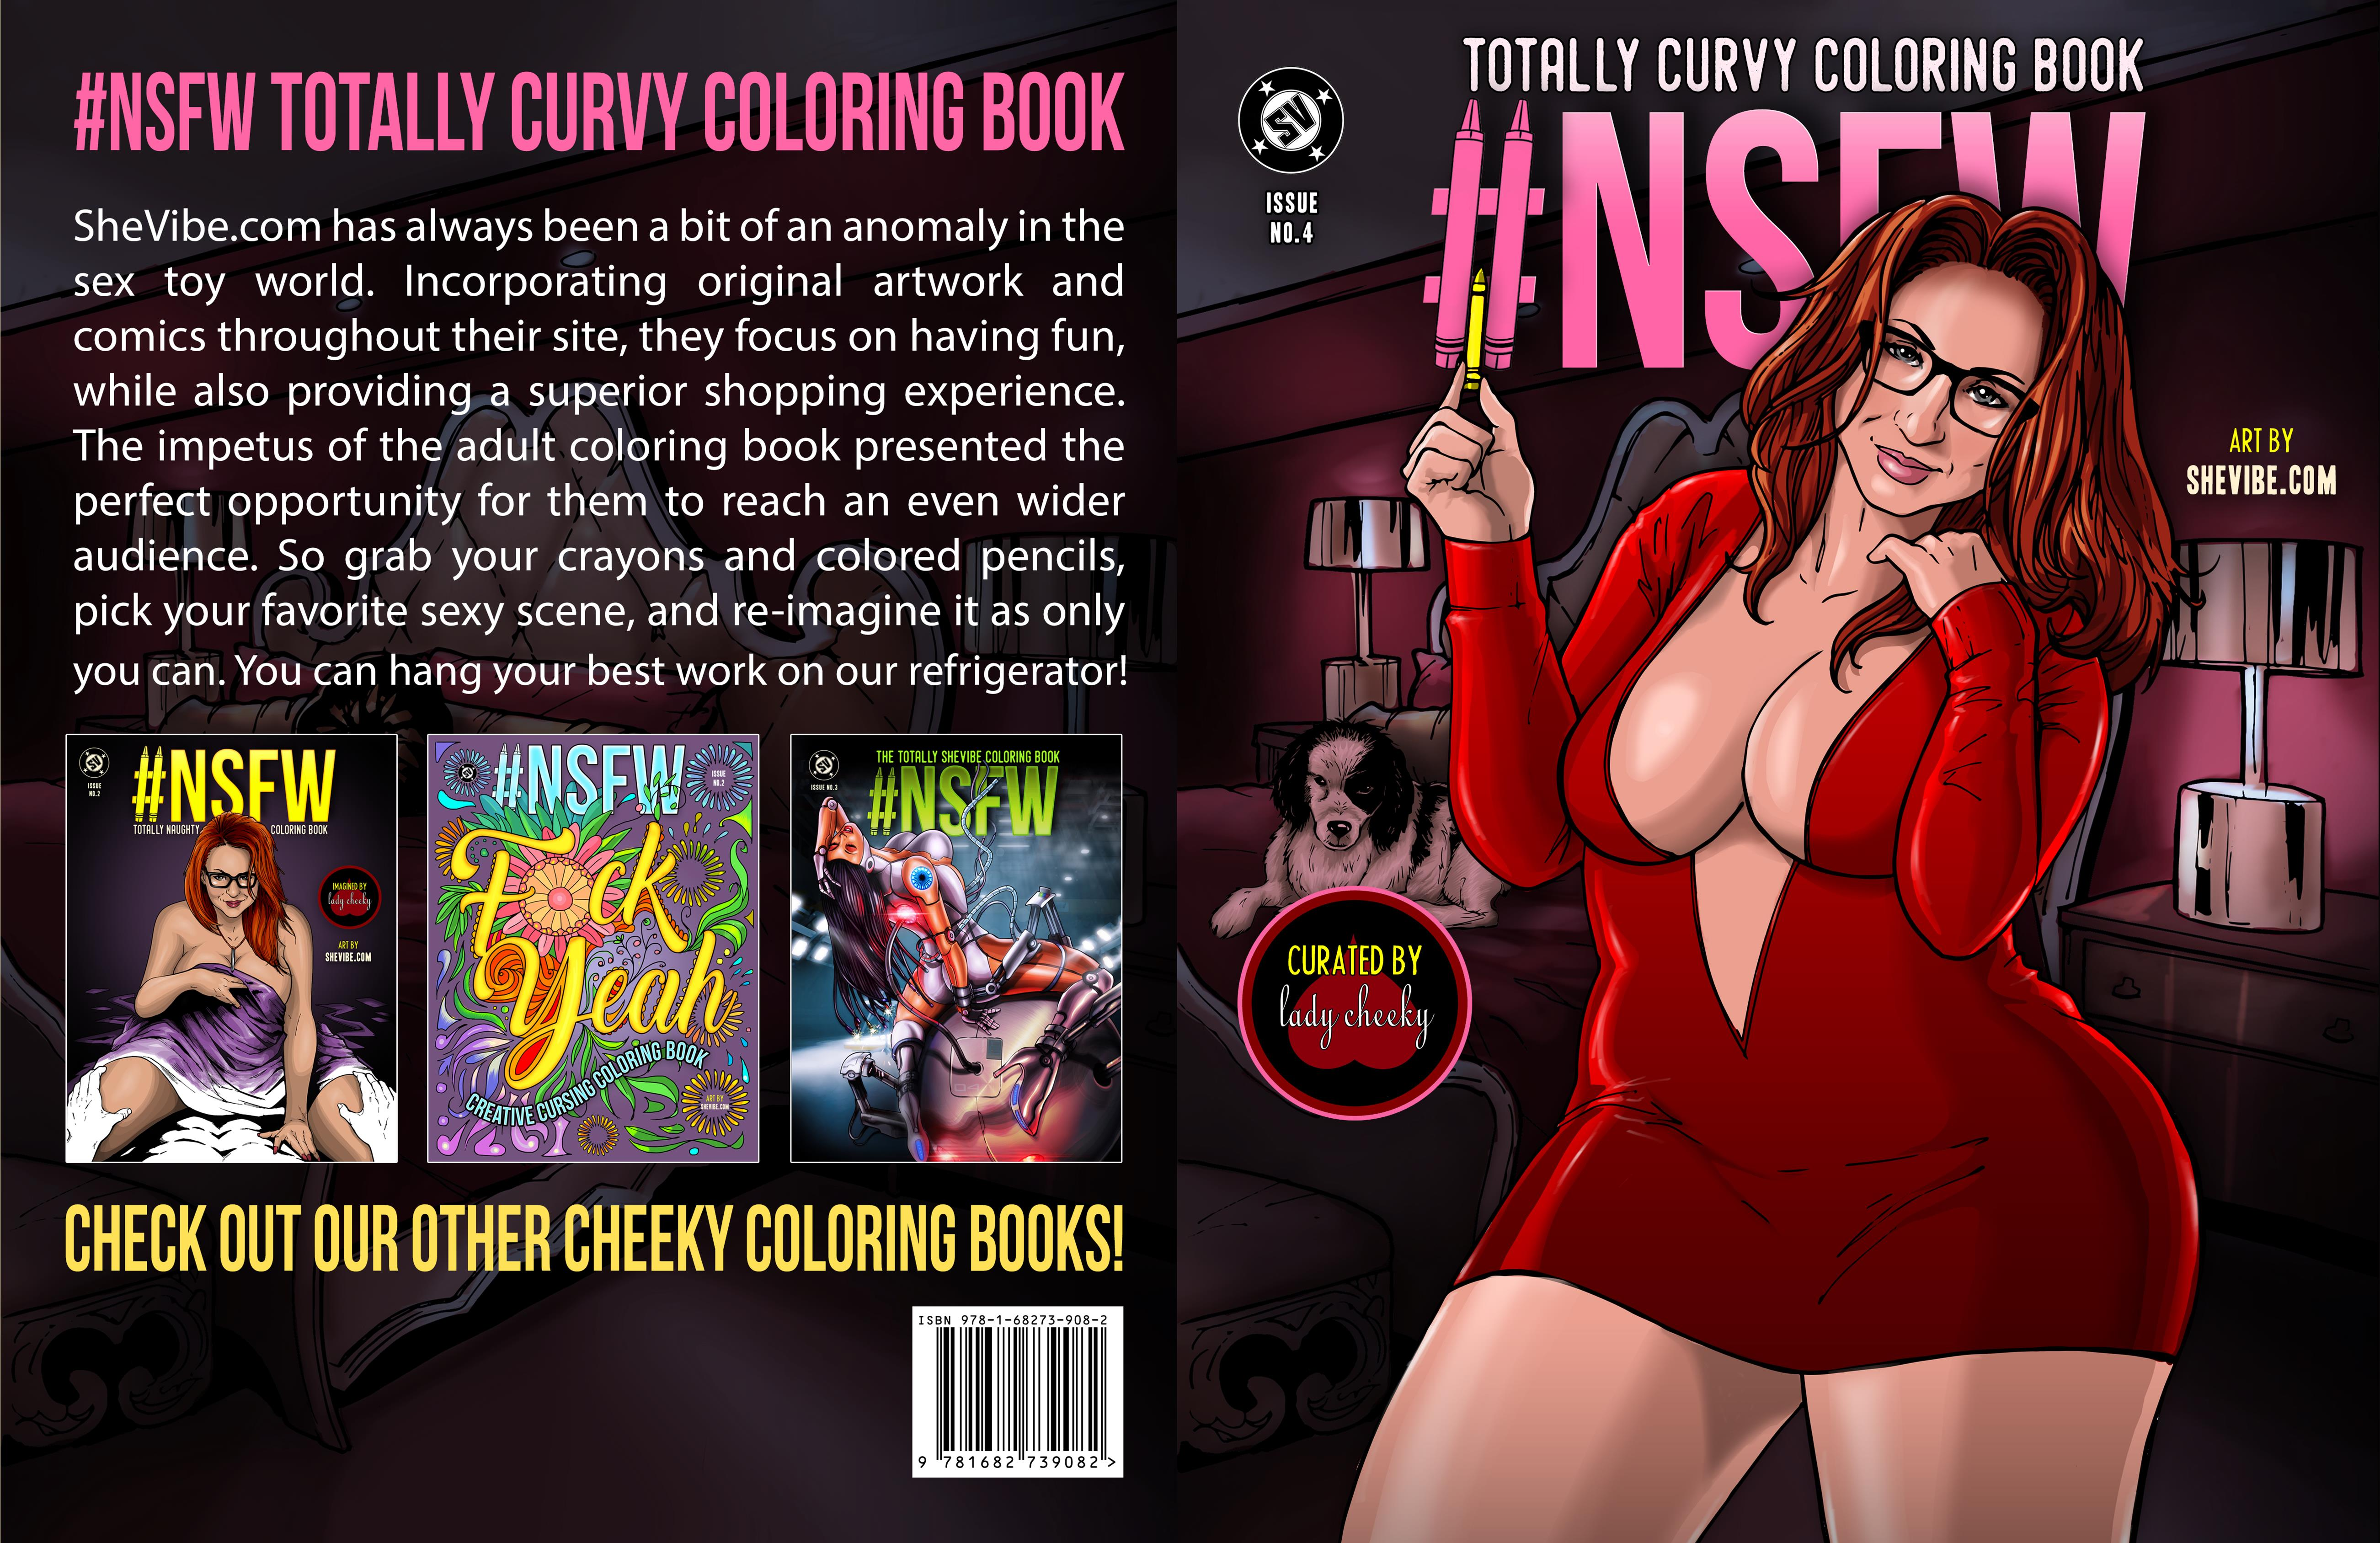 #NSFW Totally Curvy Coloring Book cover image